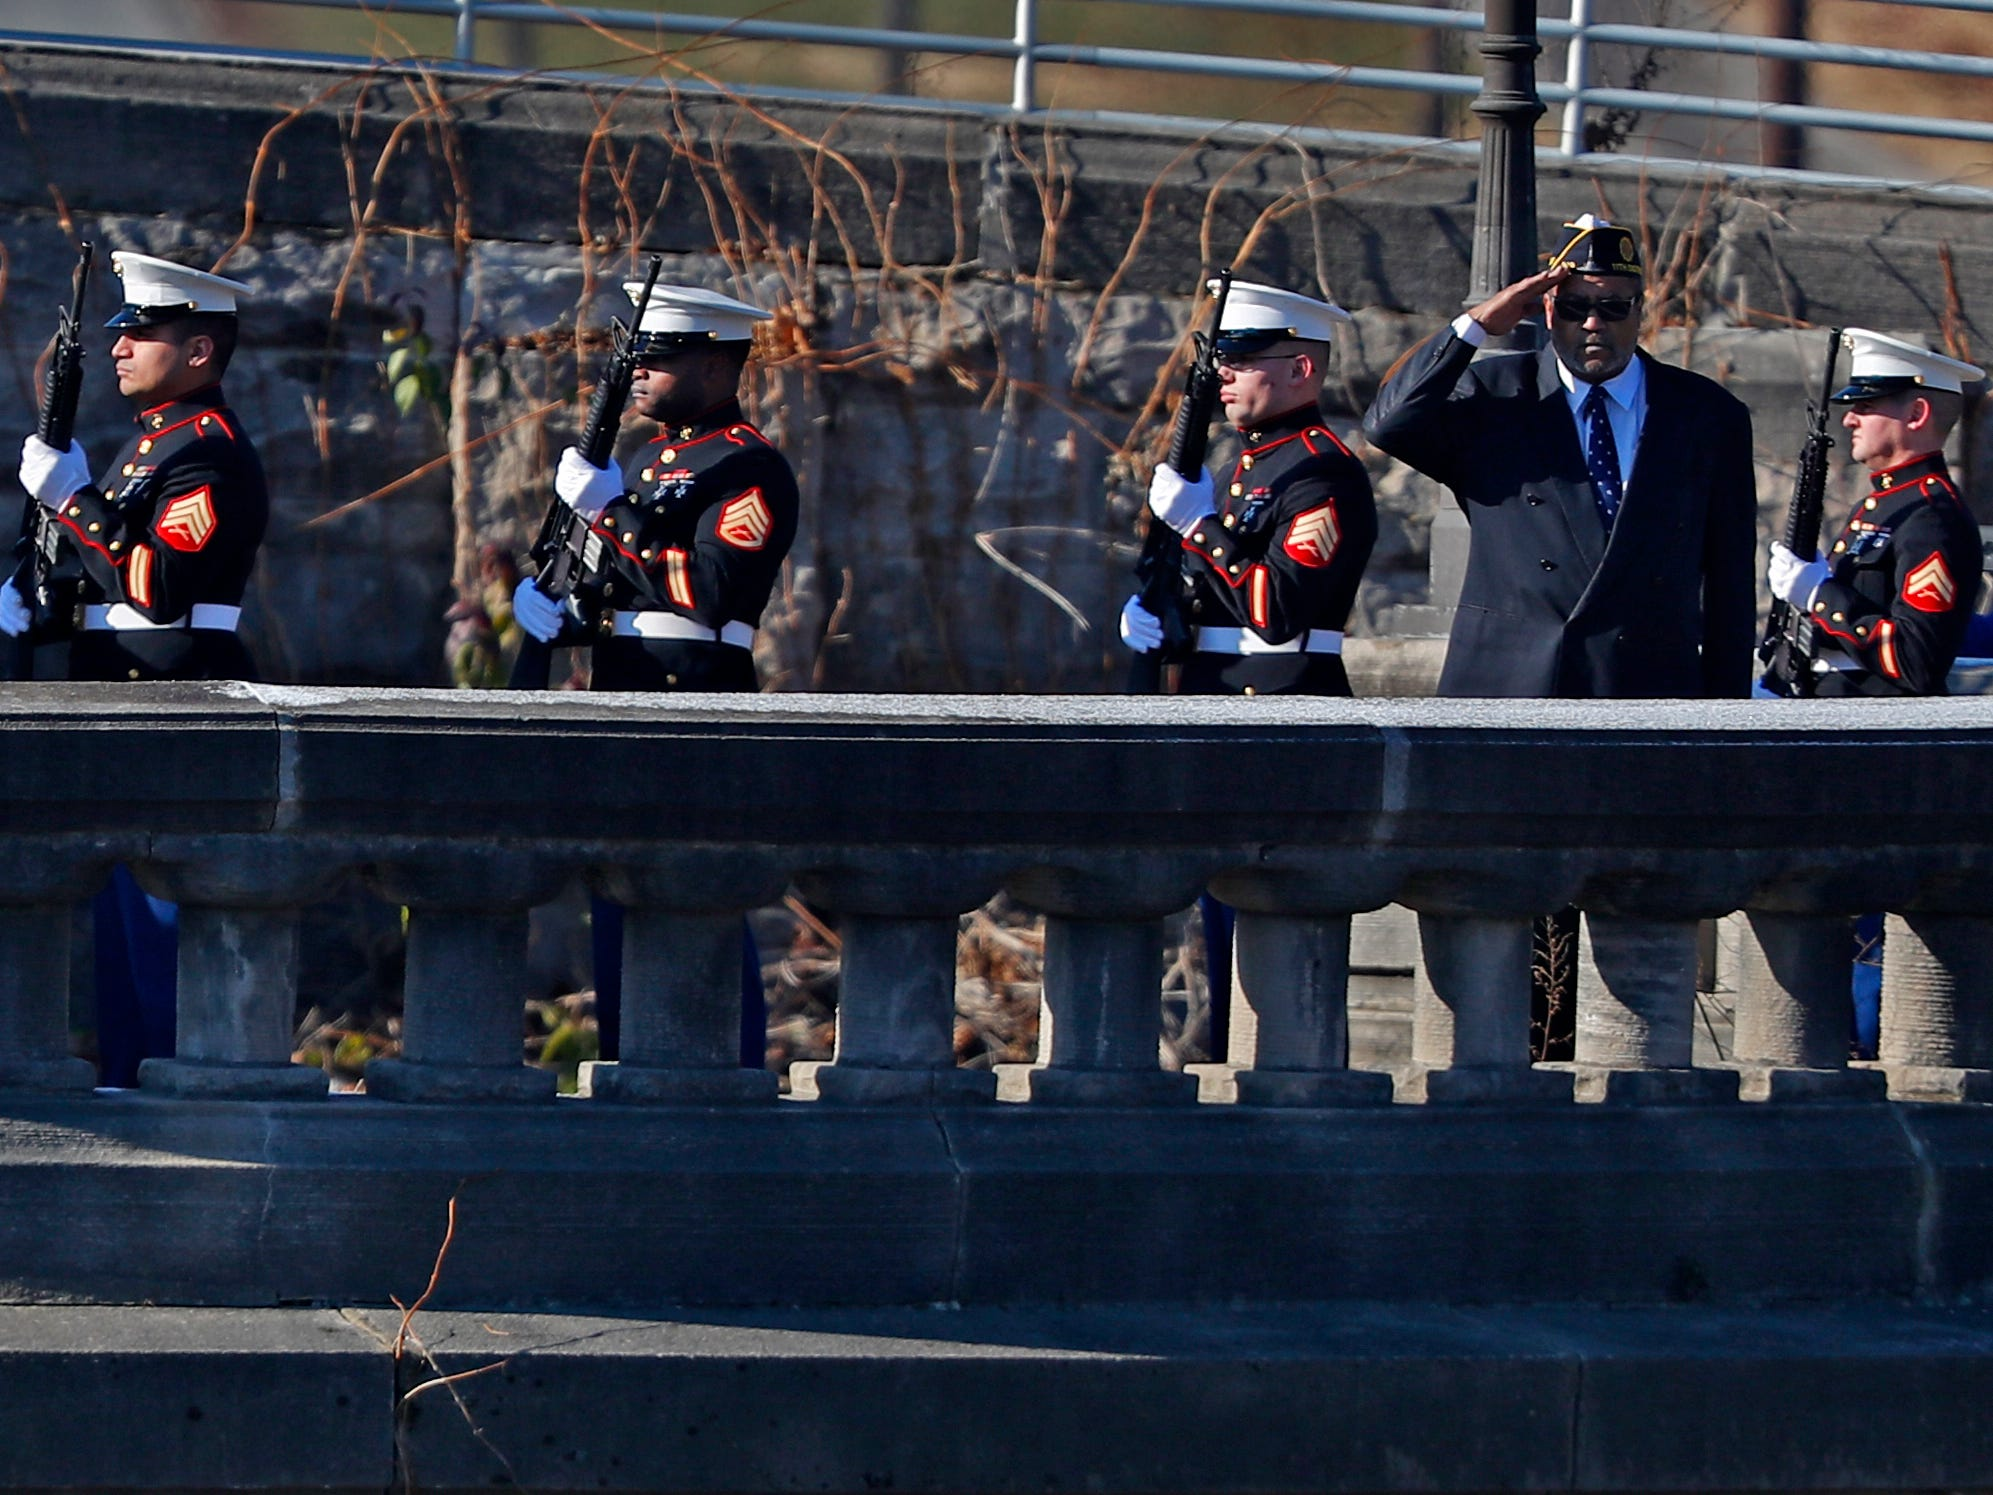 Members of the United States Marine Corps do a 21-gun rifle salute, before a wreath is tossed into White River, as part of the Pearl Harbor Day Remembrance at Riverside High School, Friday, Dec. 7, 2018.  The former Heslar Naval Armory used to host the event to remember those who died and to honor those who survived in the Dec. 7, 1941 Japanese attack on Pearl Harbor which plunged the United States into World War II.